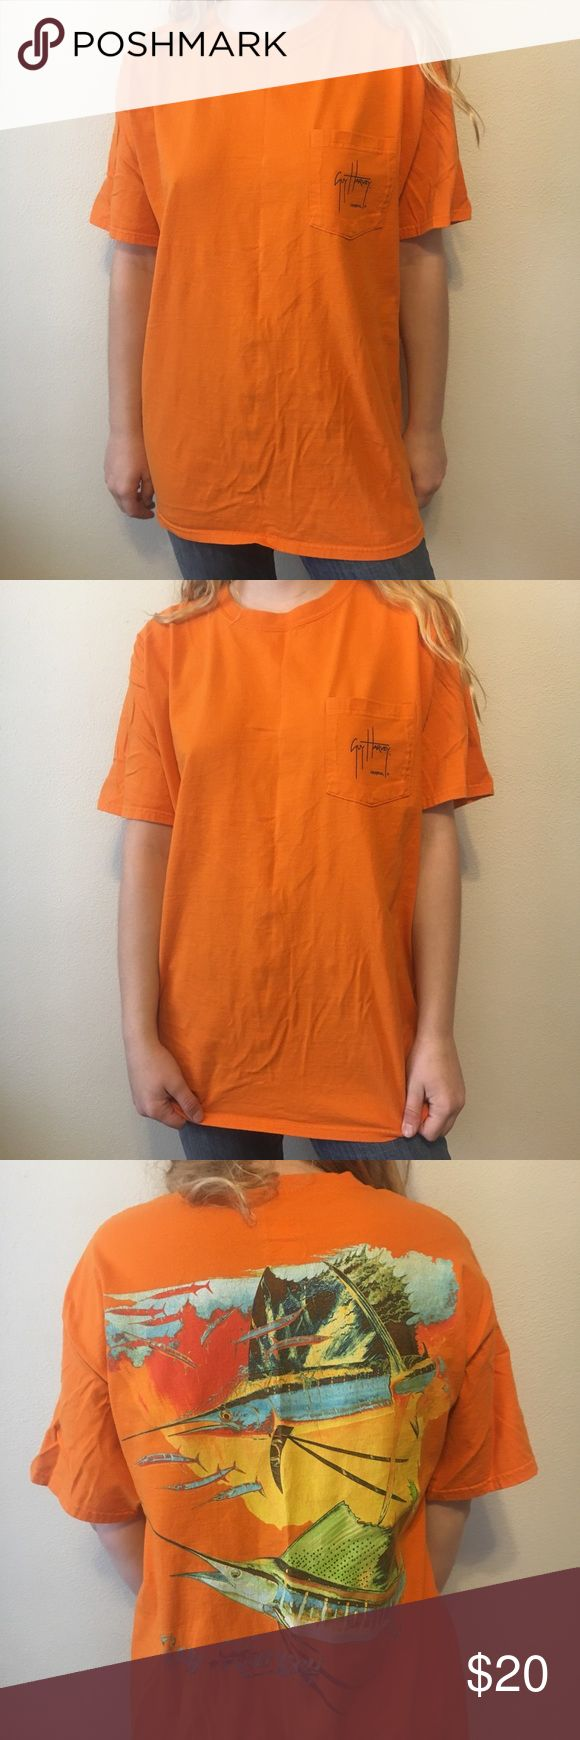 Guy Harvey orange graphic Tee large Guy Harvey orange graphic Tee in good condition. Unisex. Great for the fisherman. Vibrant colors guy harvey Shirts Tees - Short Sleeve